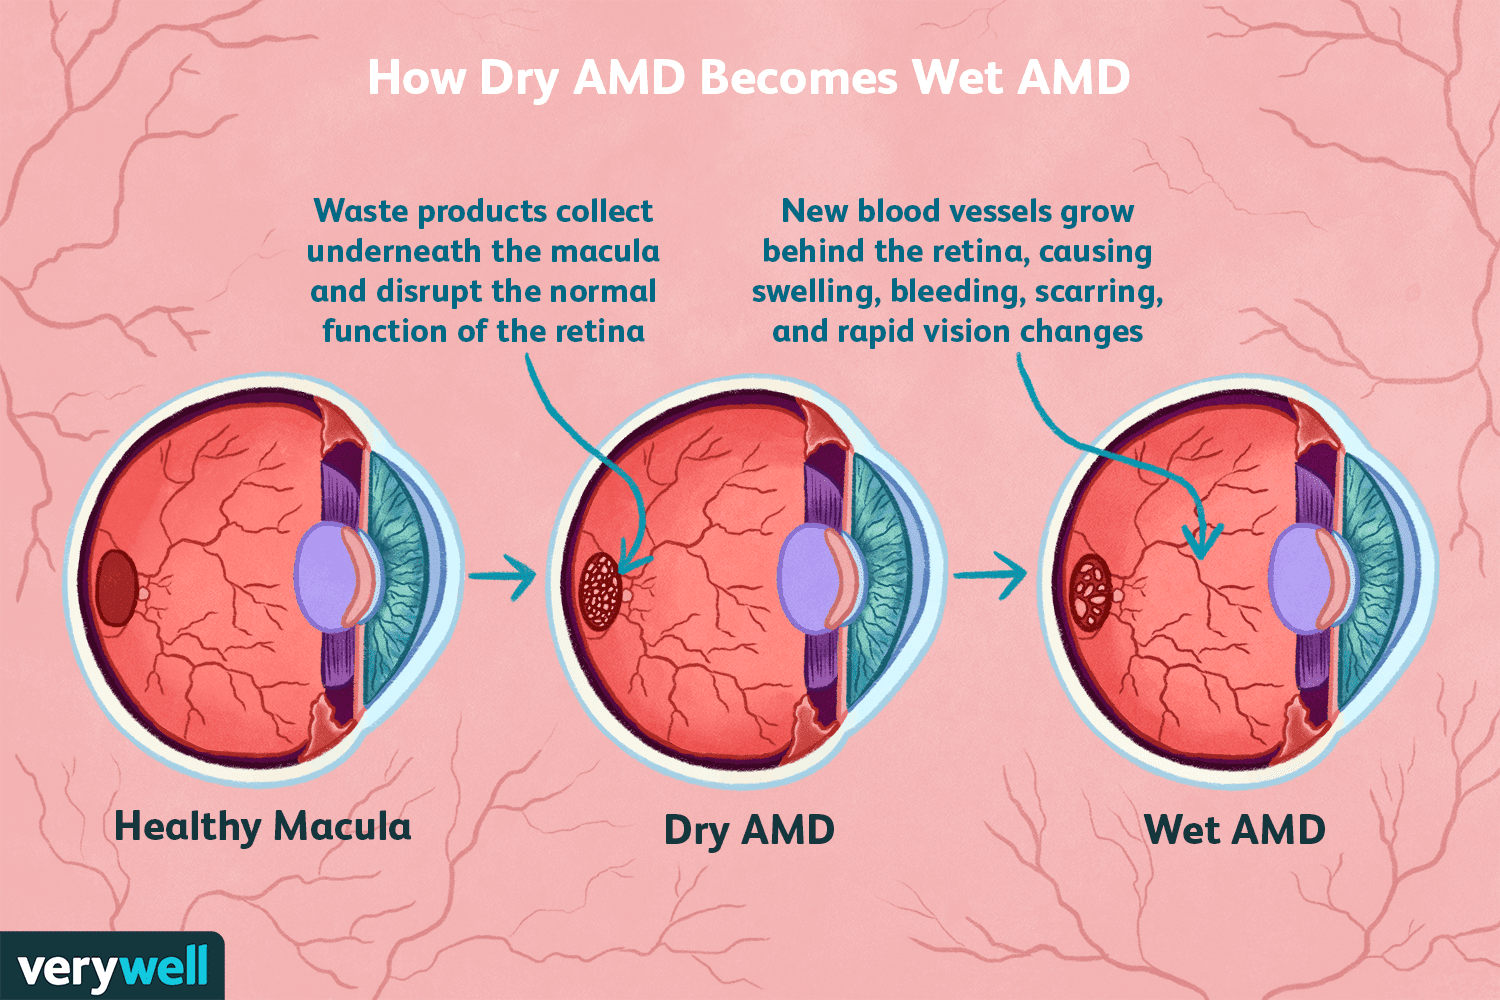 How Dry AMD Becomes Wet AMD